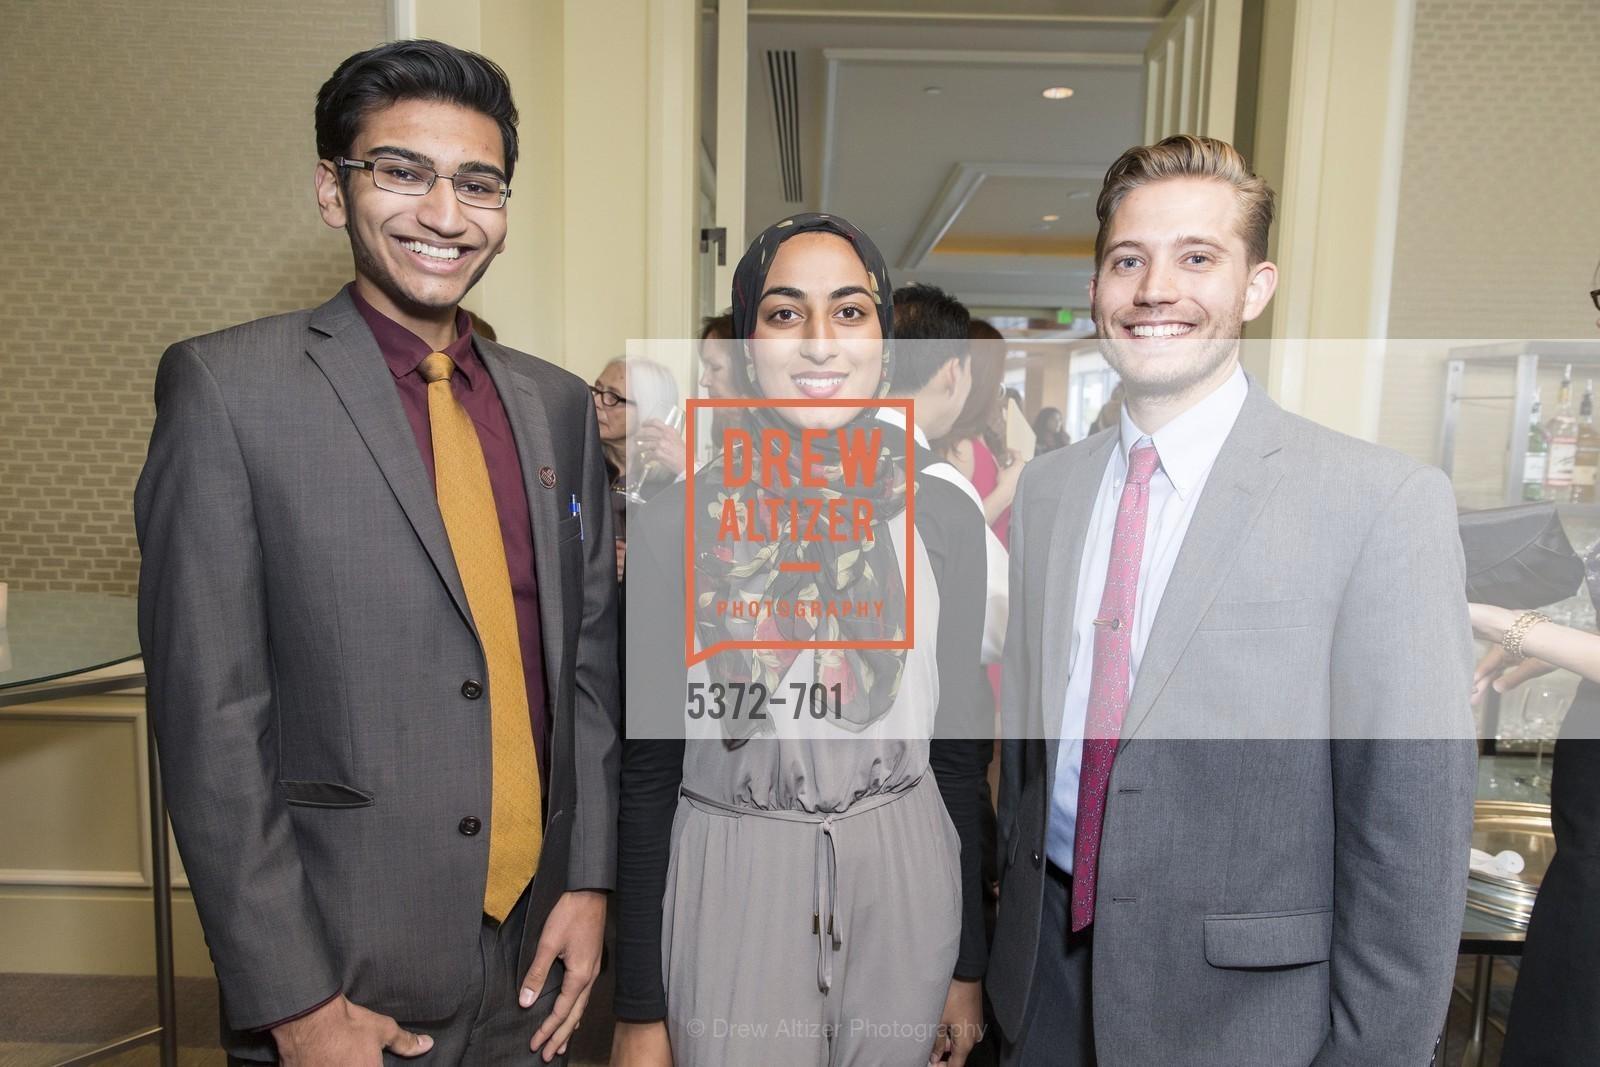 Hammad Zahid, Muriam Choudhery, Bradley Hill, SUMMER SEARCH San Francisco 25th Anniversary, US, May 7th, 2015,Drew Altizer, Drew Altizer Photography, full-service agency, private events, San Francisco photographer, photographer california